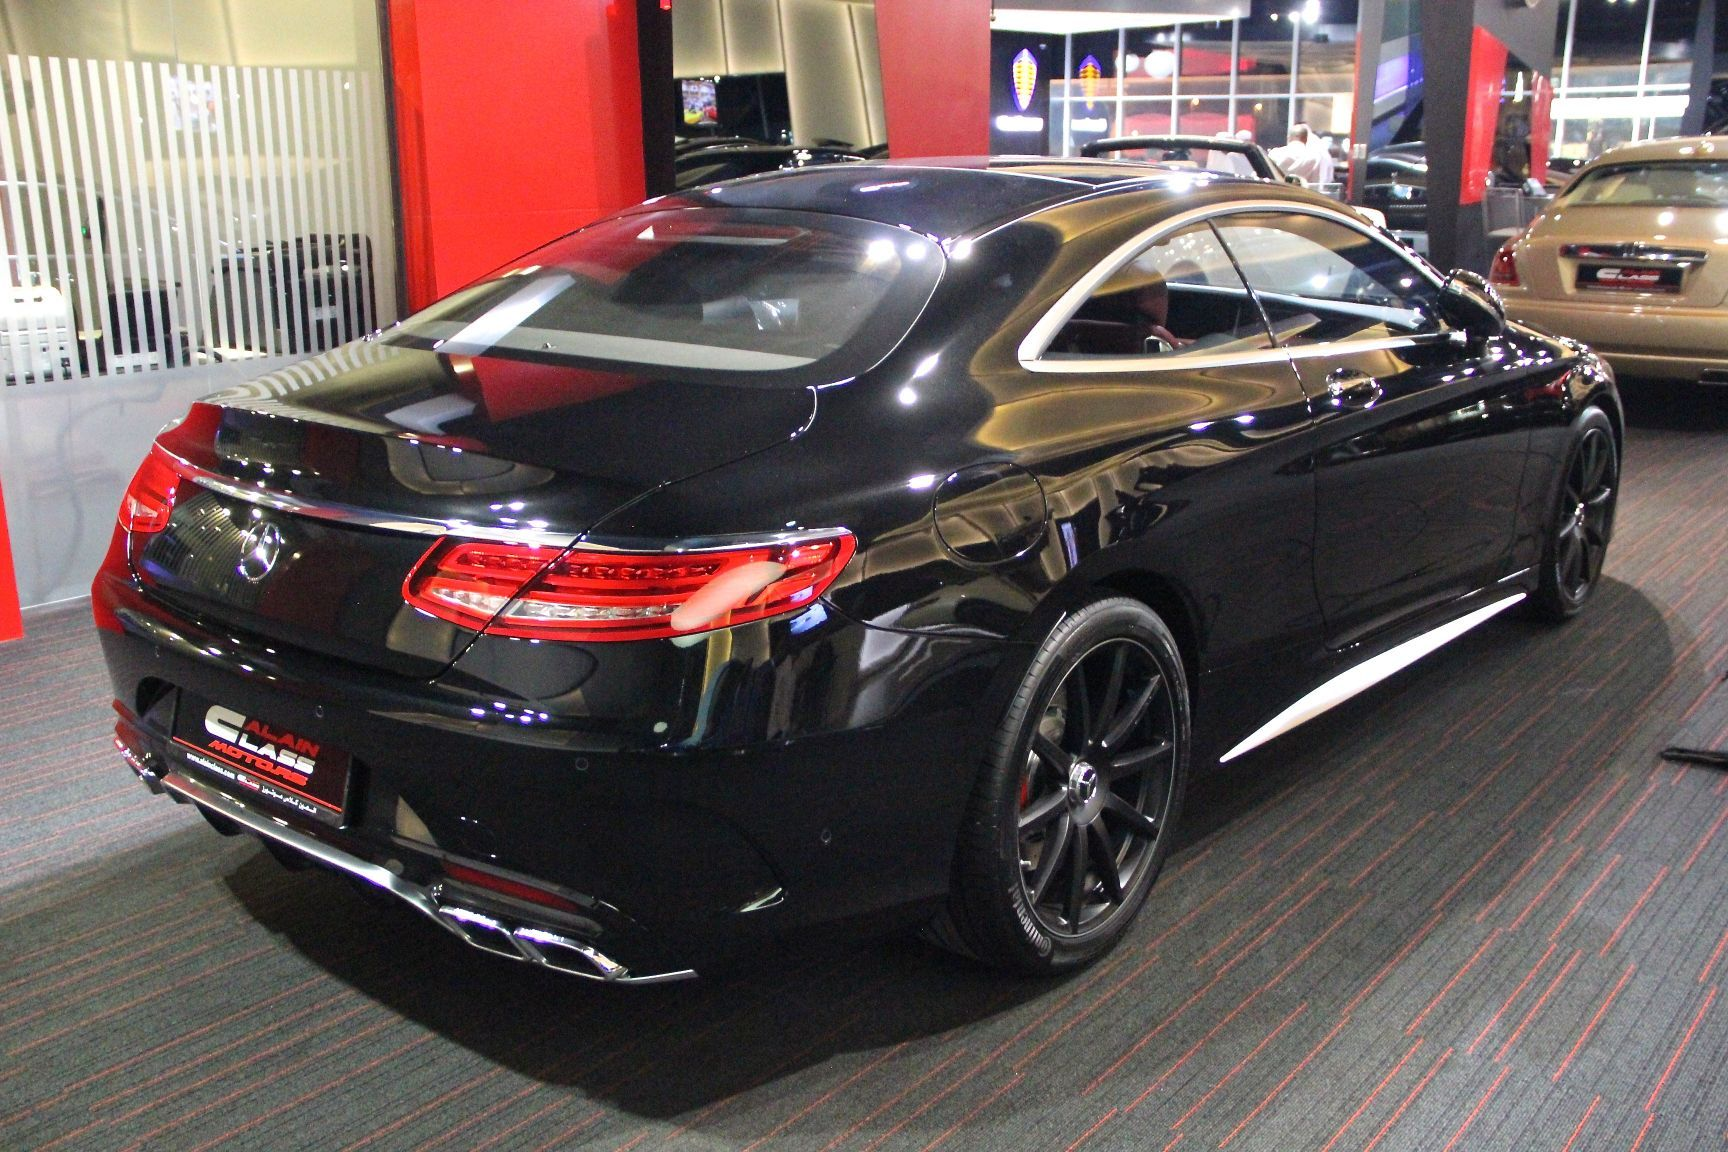 mercedes s63 coupe o amg gts p gina 9 forocoches. Black Bedroom Furniture Sets. Home Design Ideas